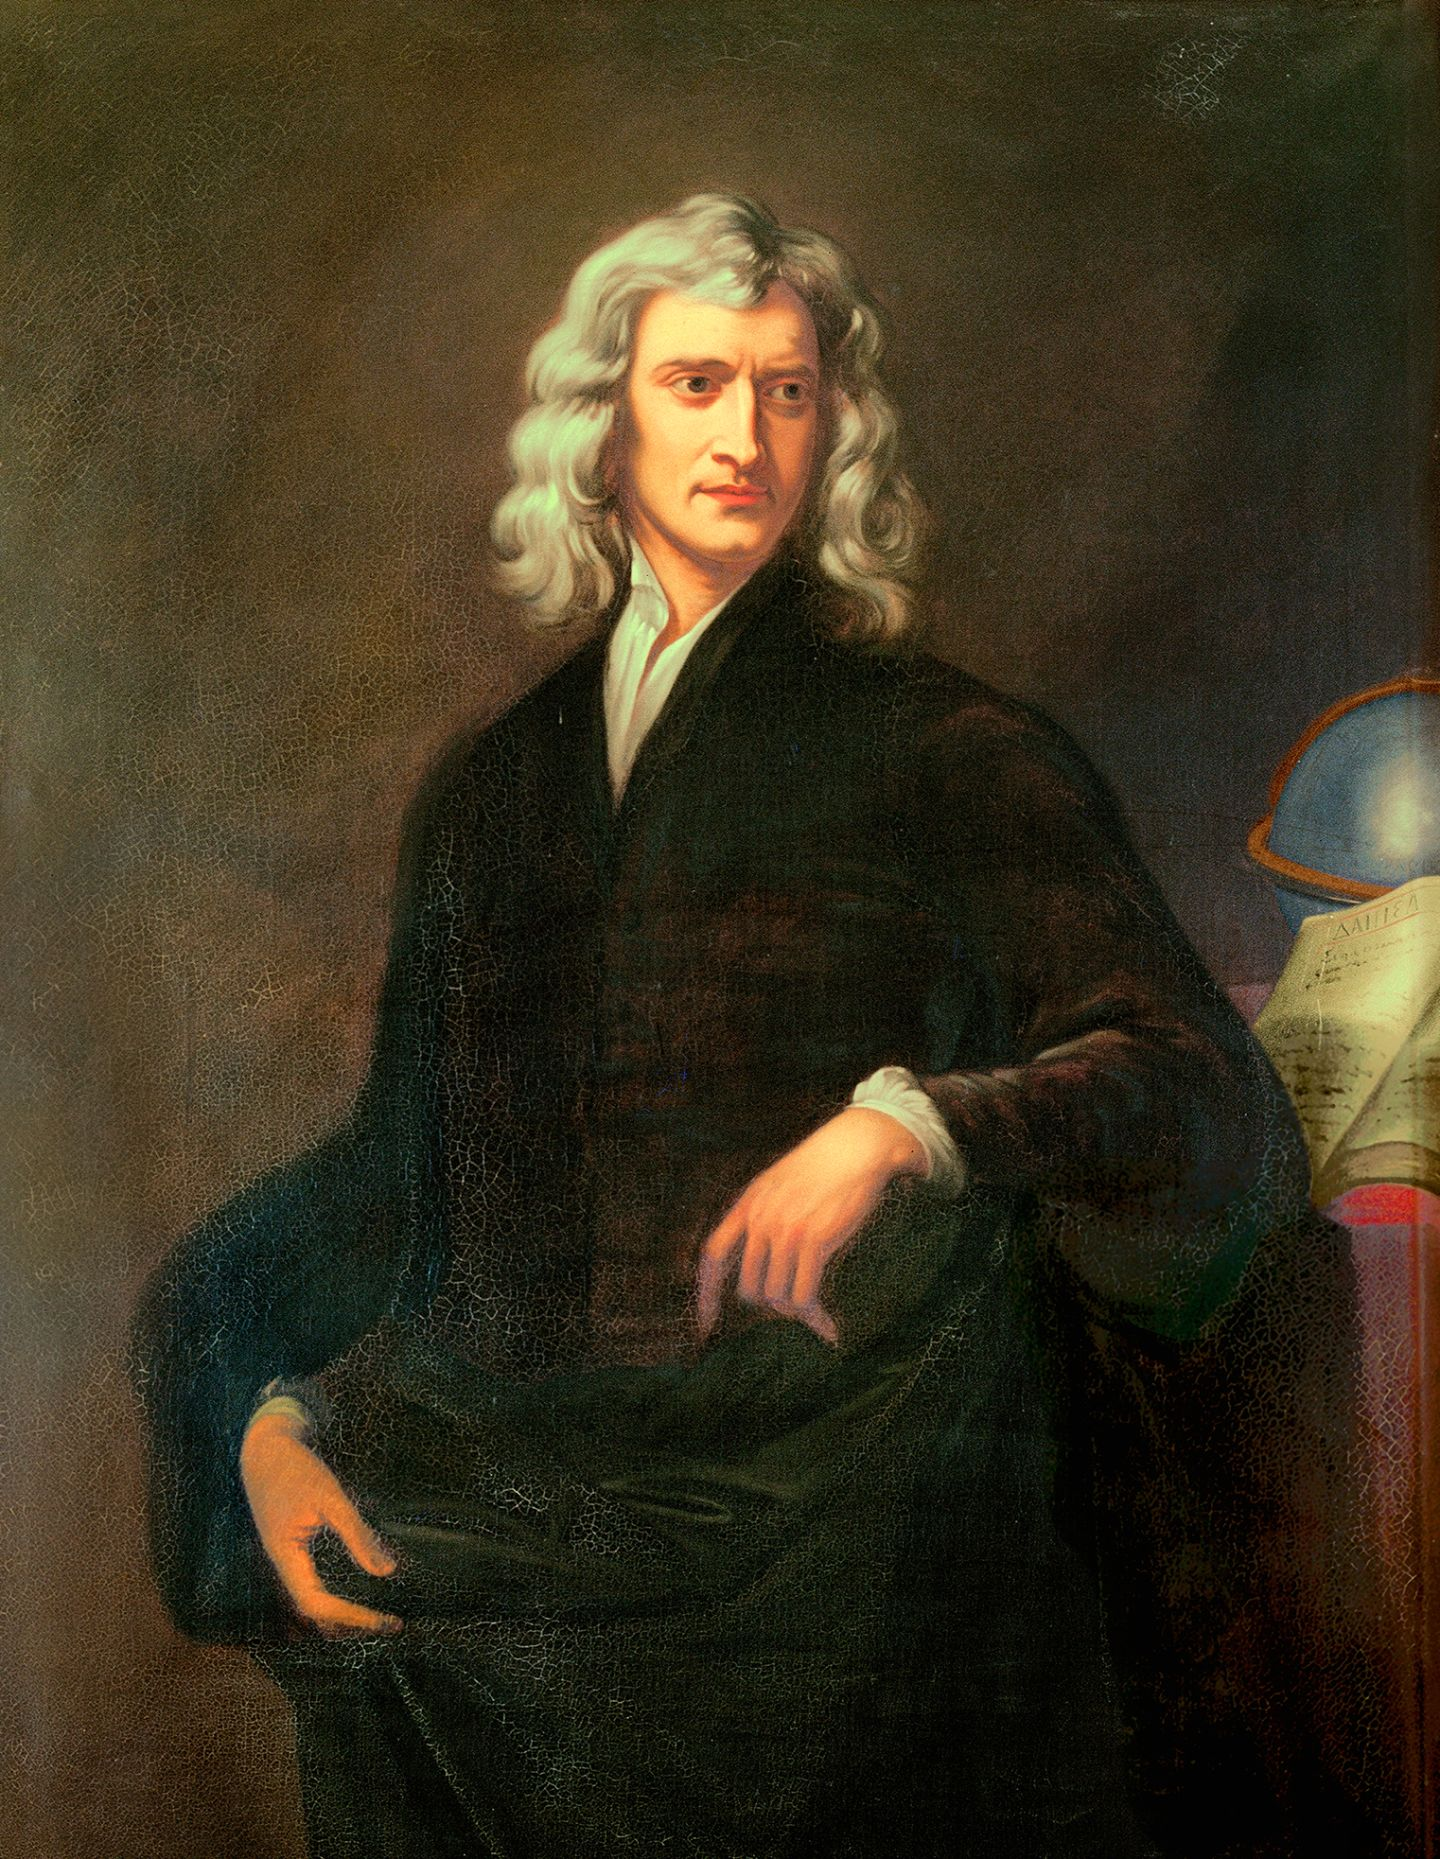 What is a good topic to write about isaac newton.?